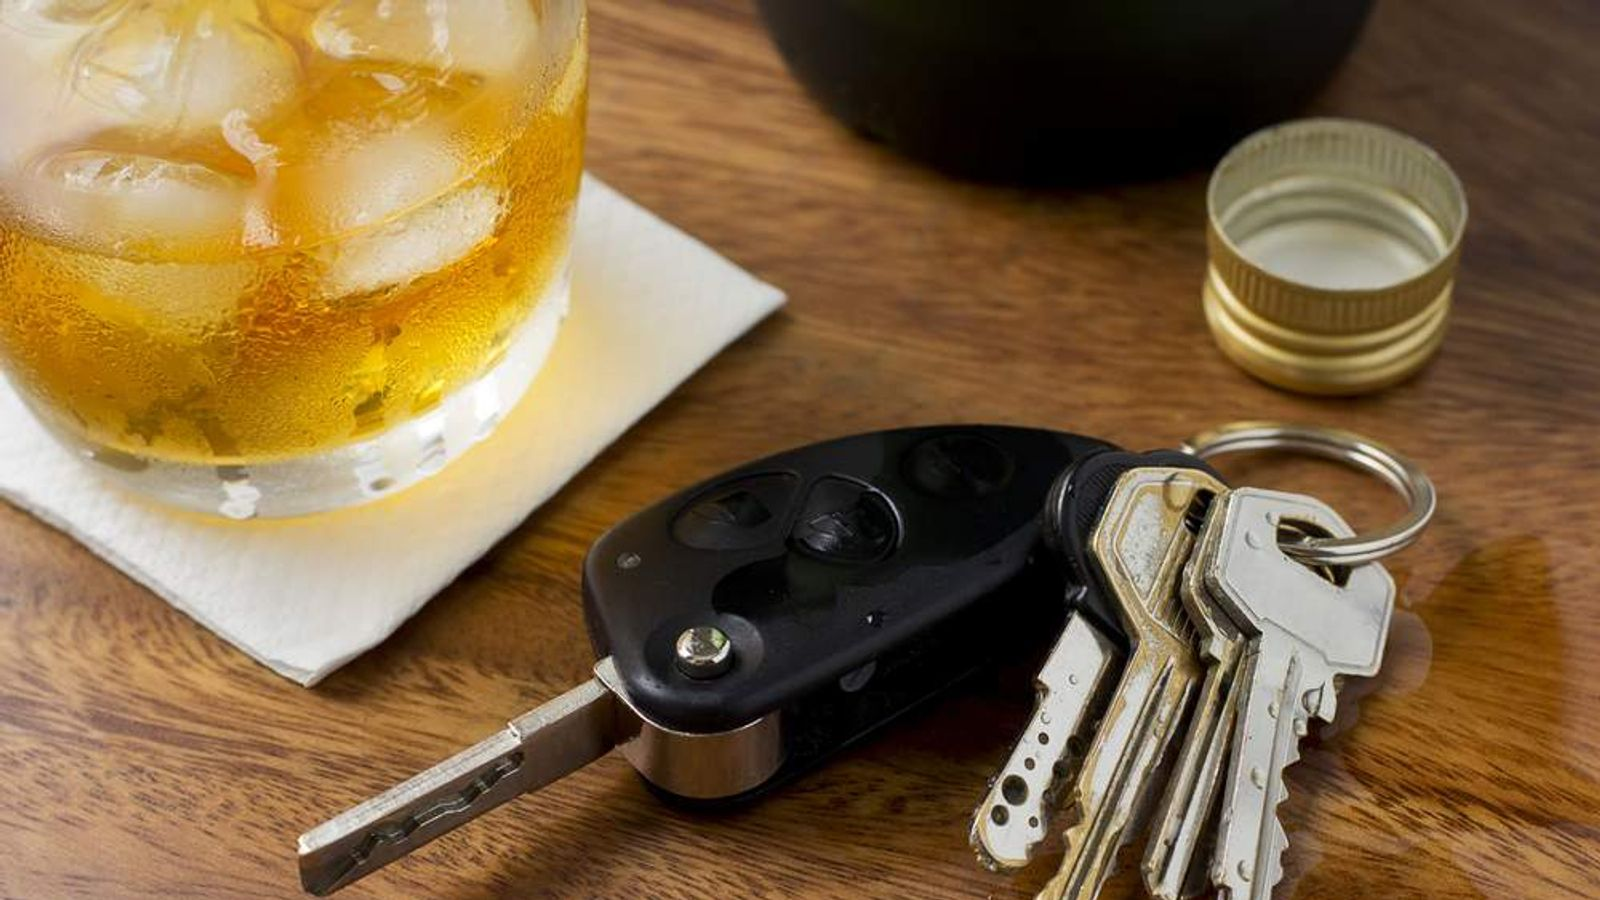 Alcohol and keys